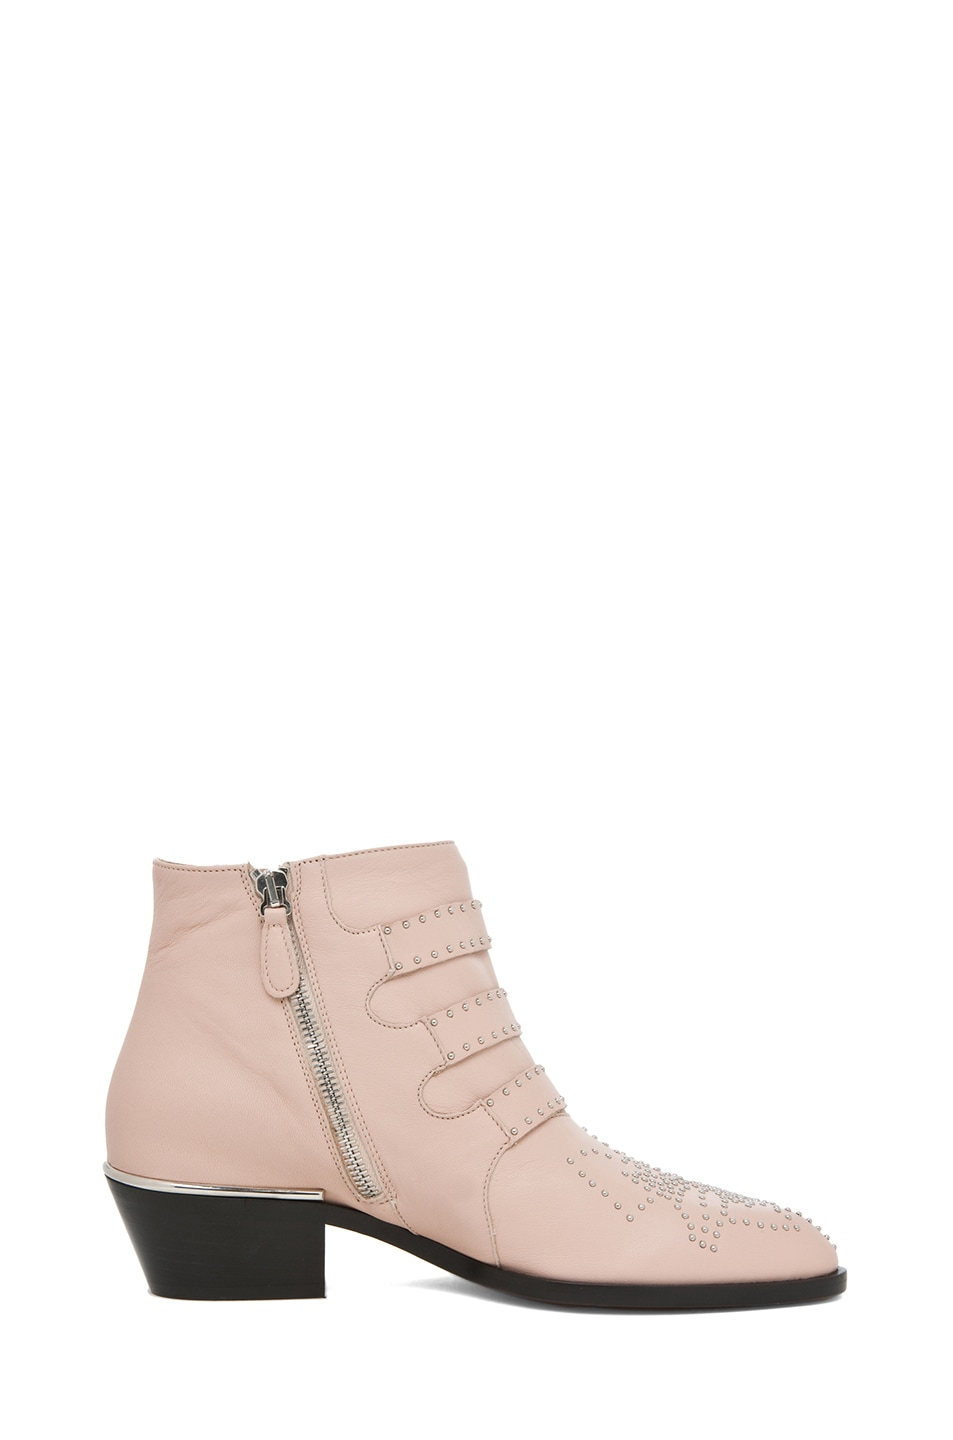 Image 5 of Chloe Susanna Leather Studded Bootie in Nude Pink